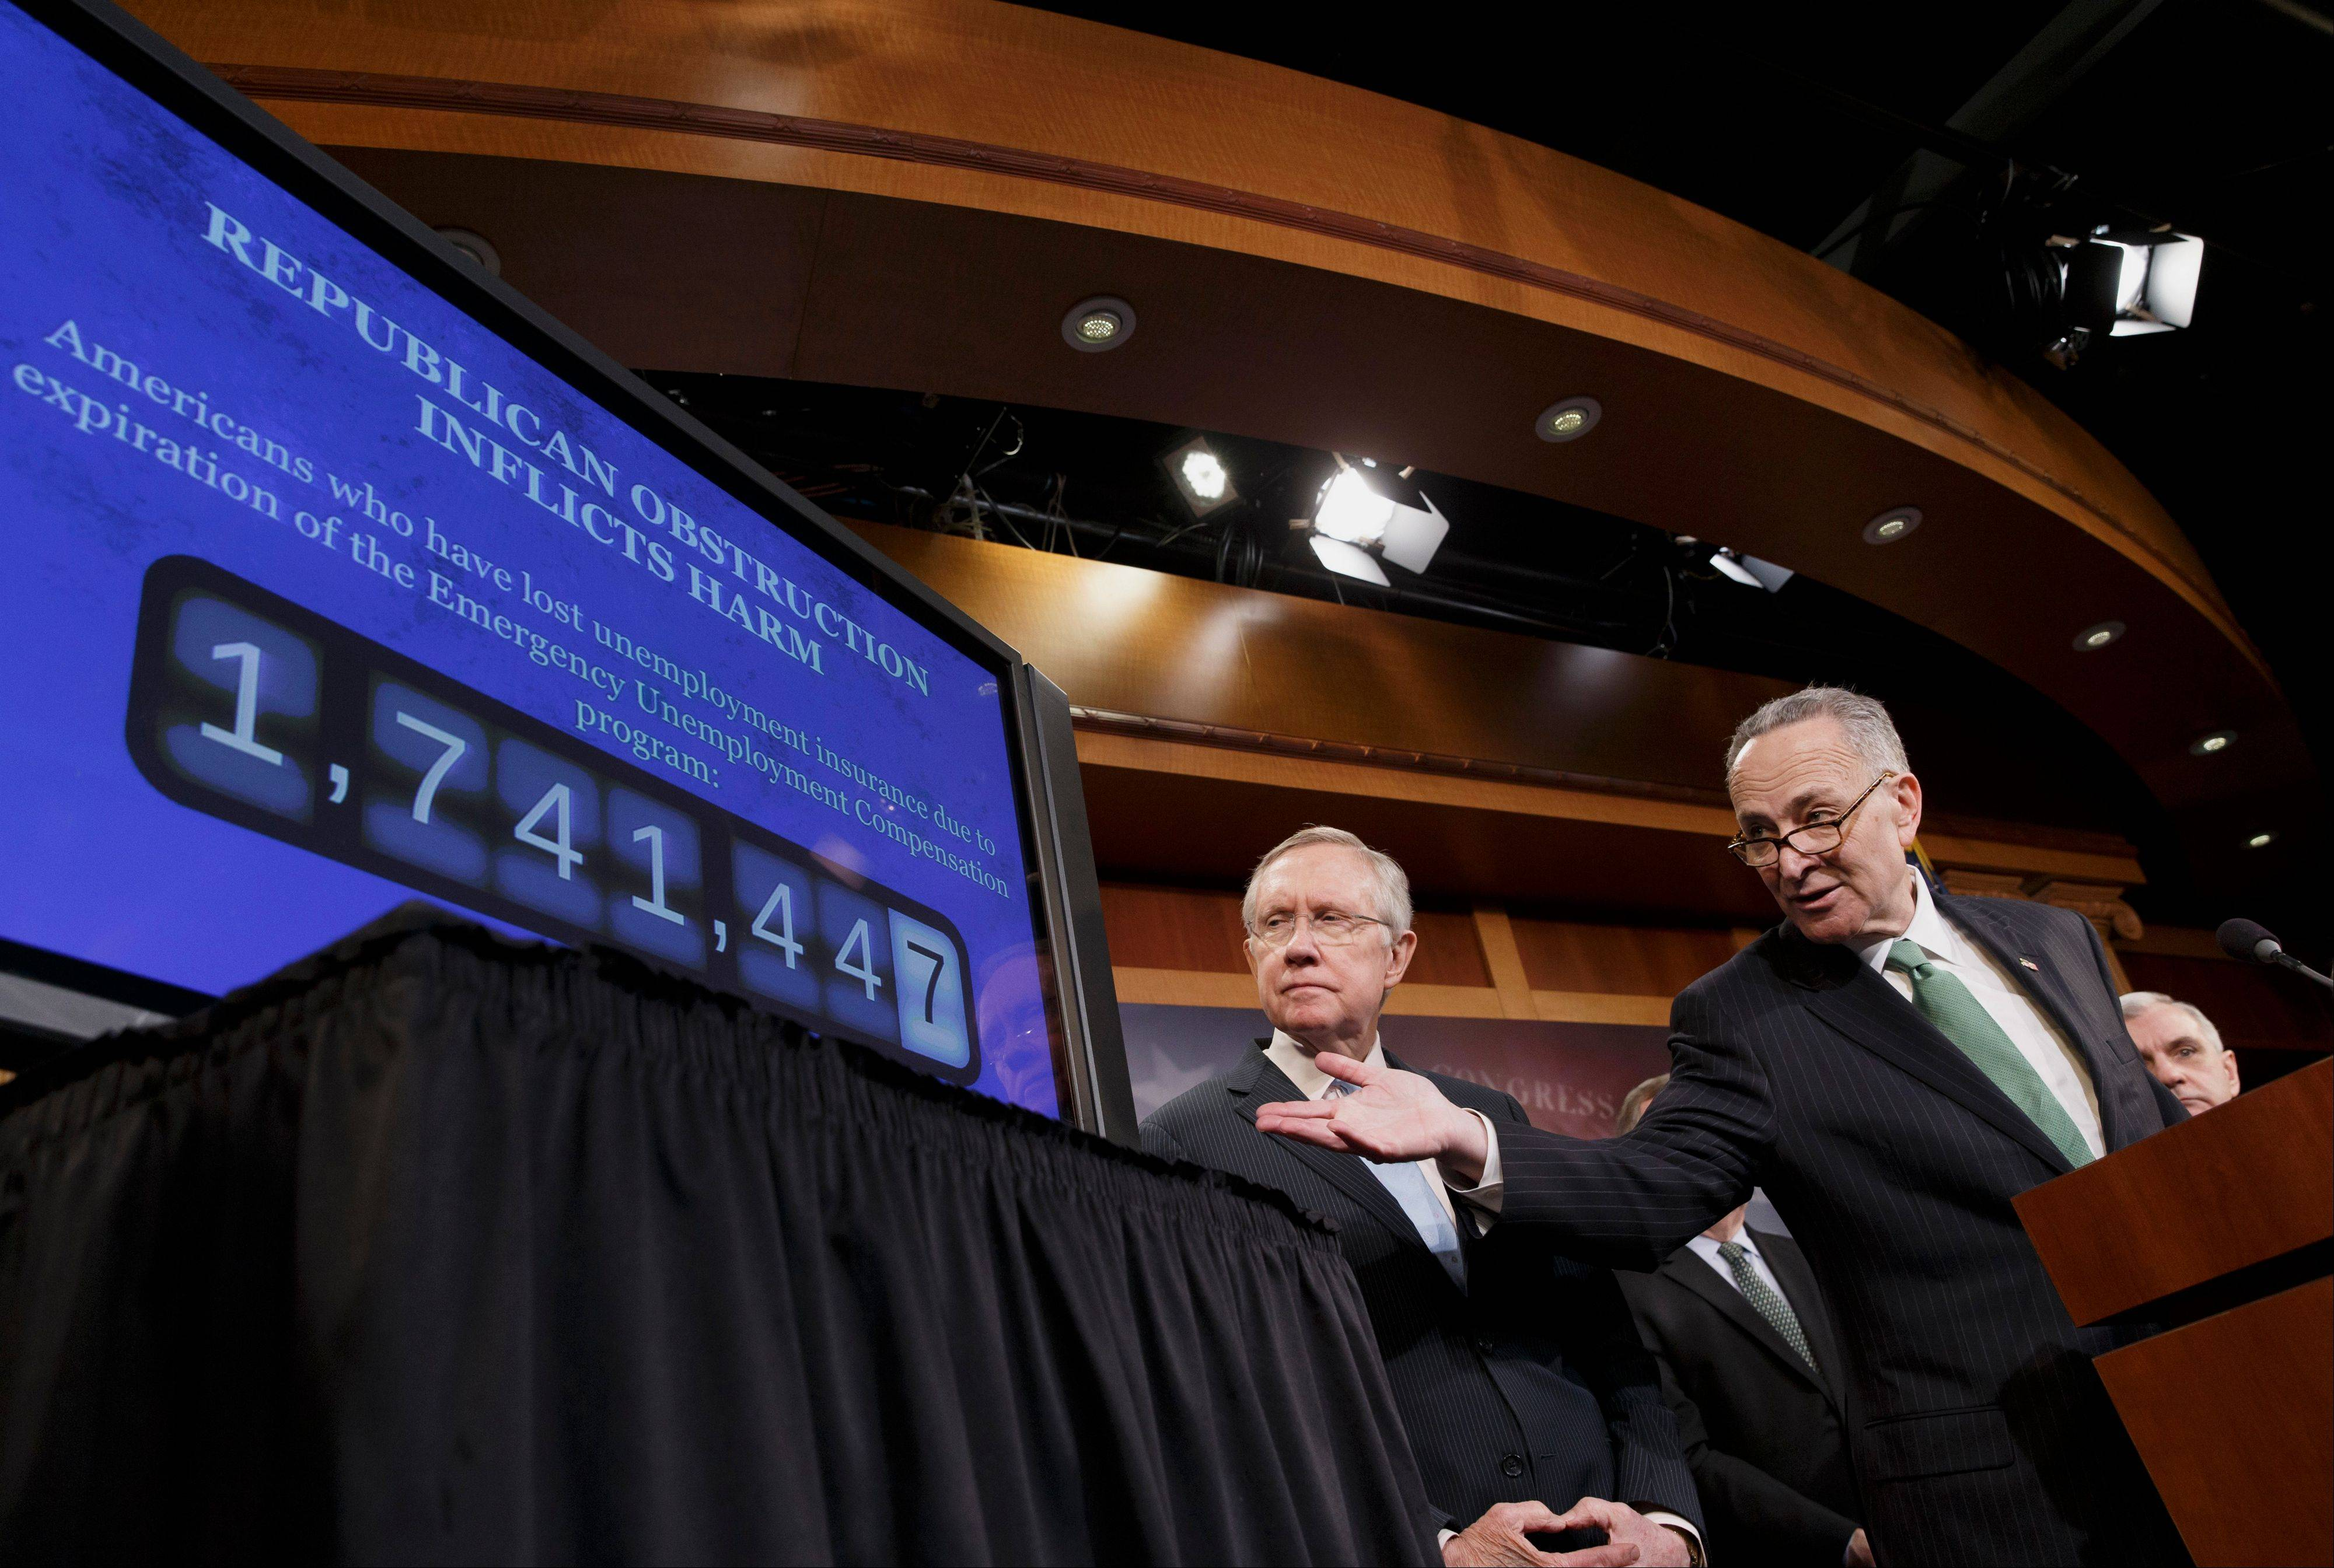 Sen. Charles Schumer, the Democratic Policy Committee chairman, right, accompanied by Senate Majority Leader Harry Reid, points to a graphic during a news conference on Capitol Hill Thursday, where they charged Republicans are thwarting Democratic efforts pass a bill to extend unemployment benefits which expired at the end of last year.